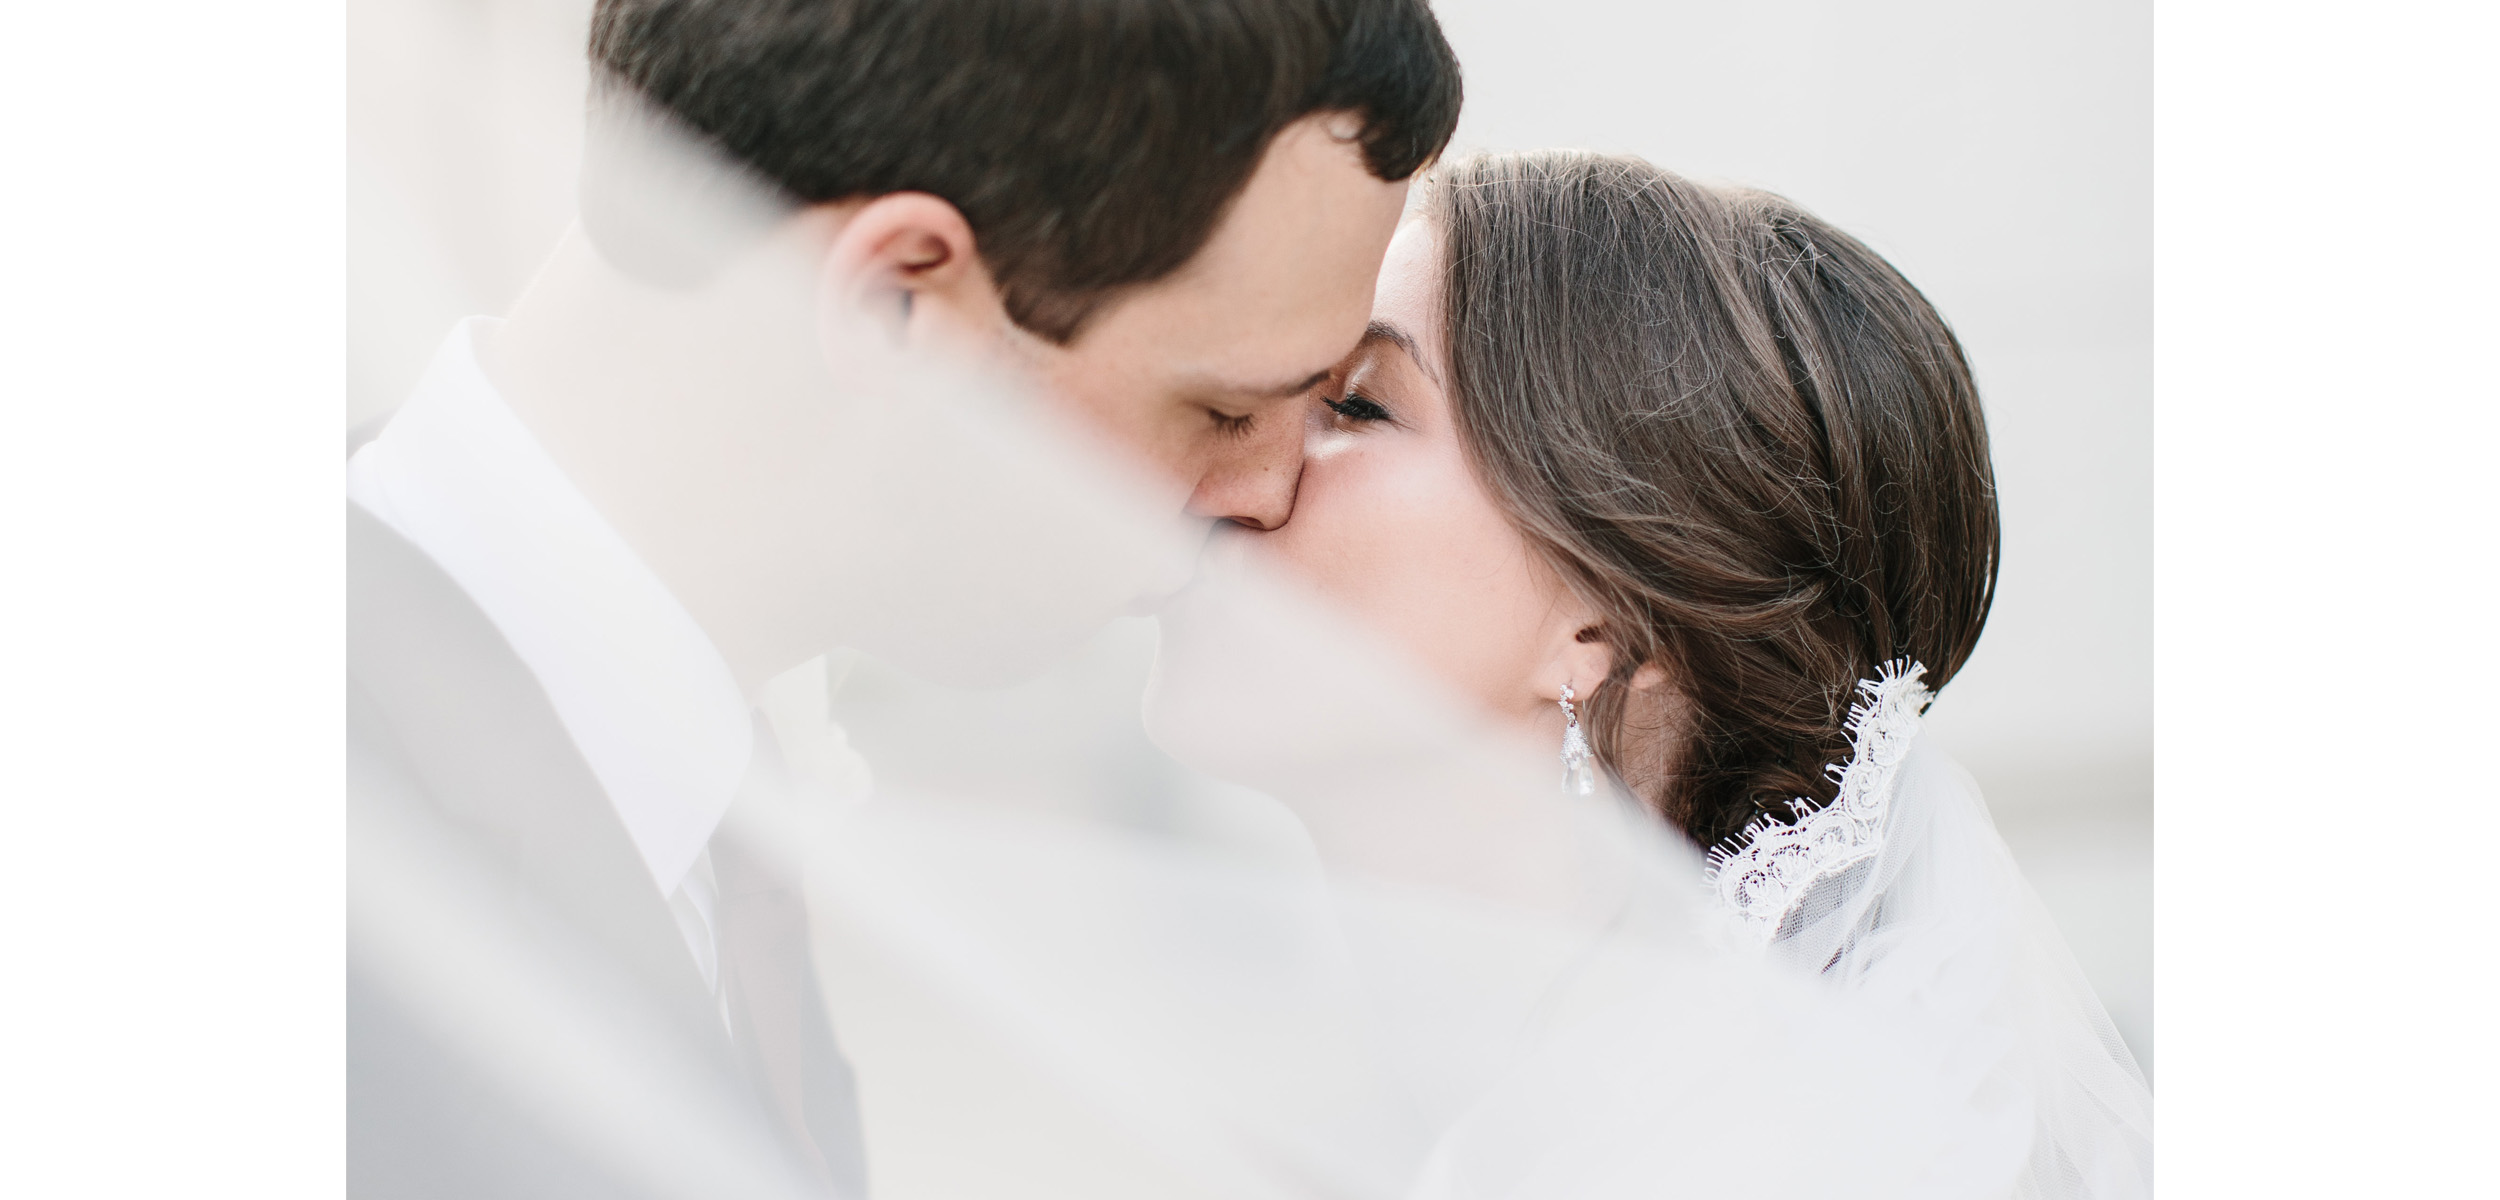 Wedding veil. wedding kiss. raleigh wedding photographer. raleigh photographer. wake forest photographer. wake forest wedding photographer.jpg